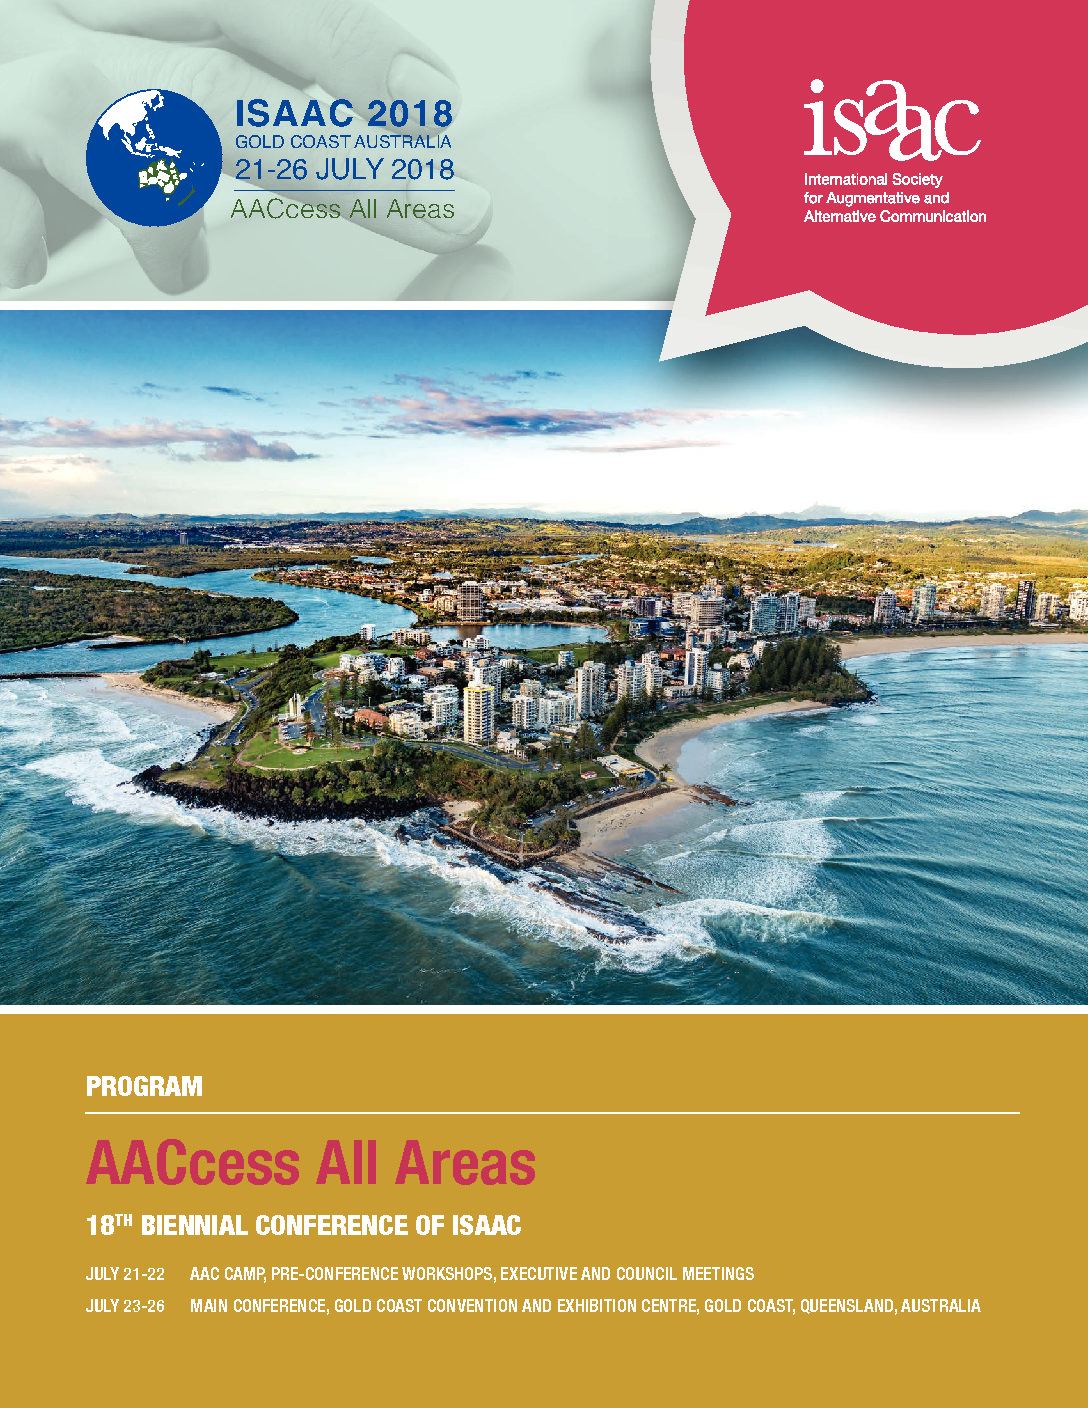 ISAAC 2018 Program: AACcess All Areas